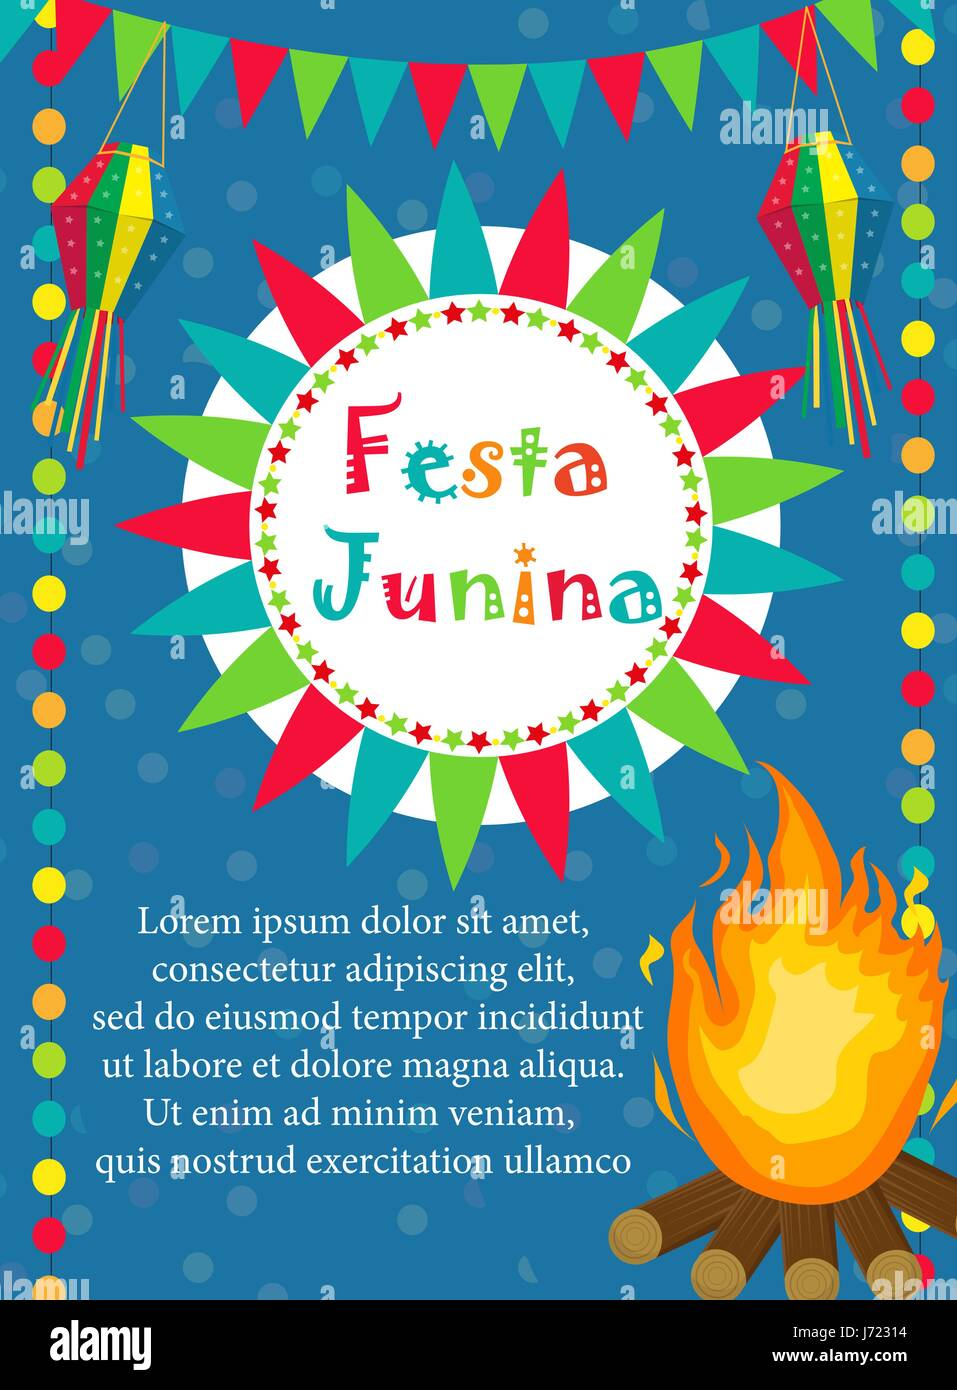 Festa junina greeting card invitation poster brazilian latin festa junina greeting card invitation poster brazilian latin american festival template for your designctor illustration stopboris Images